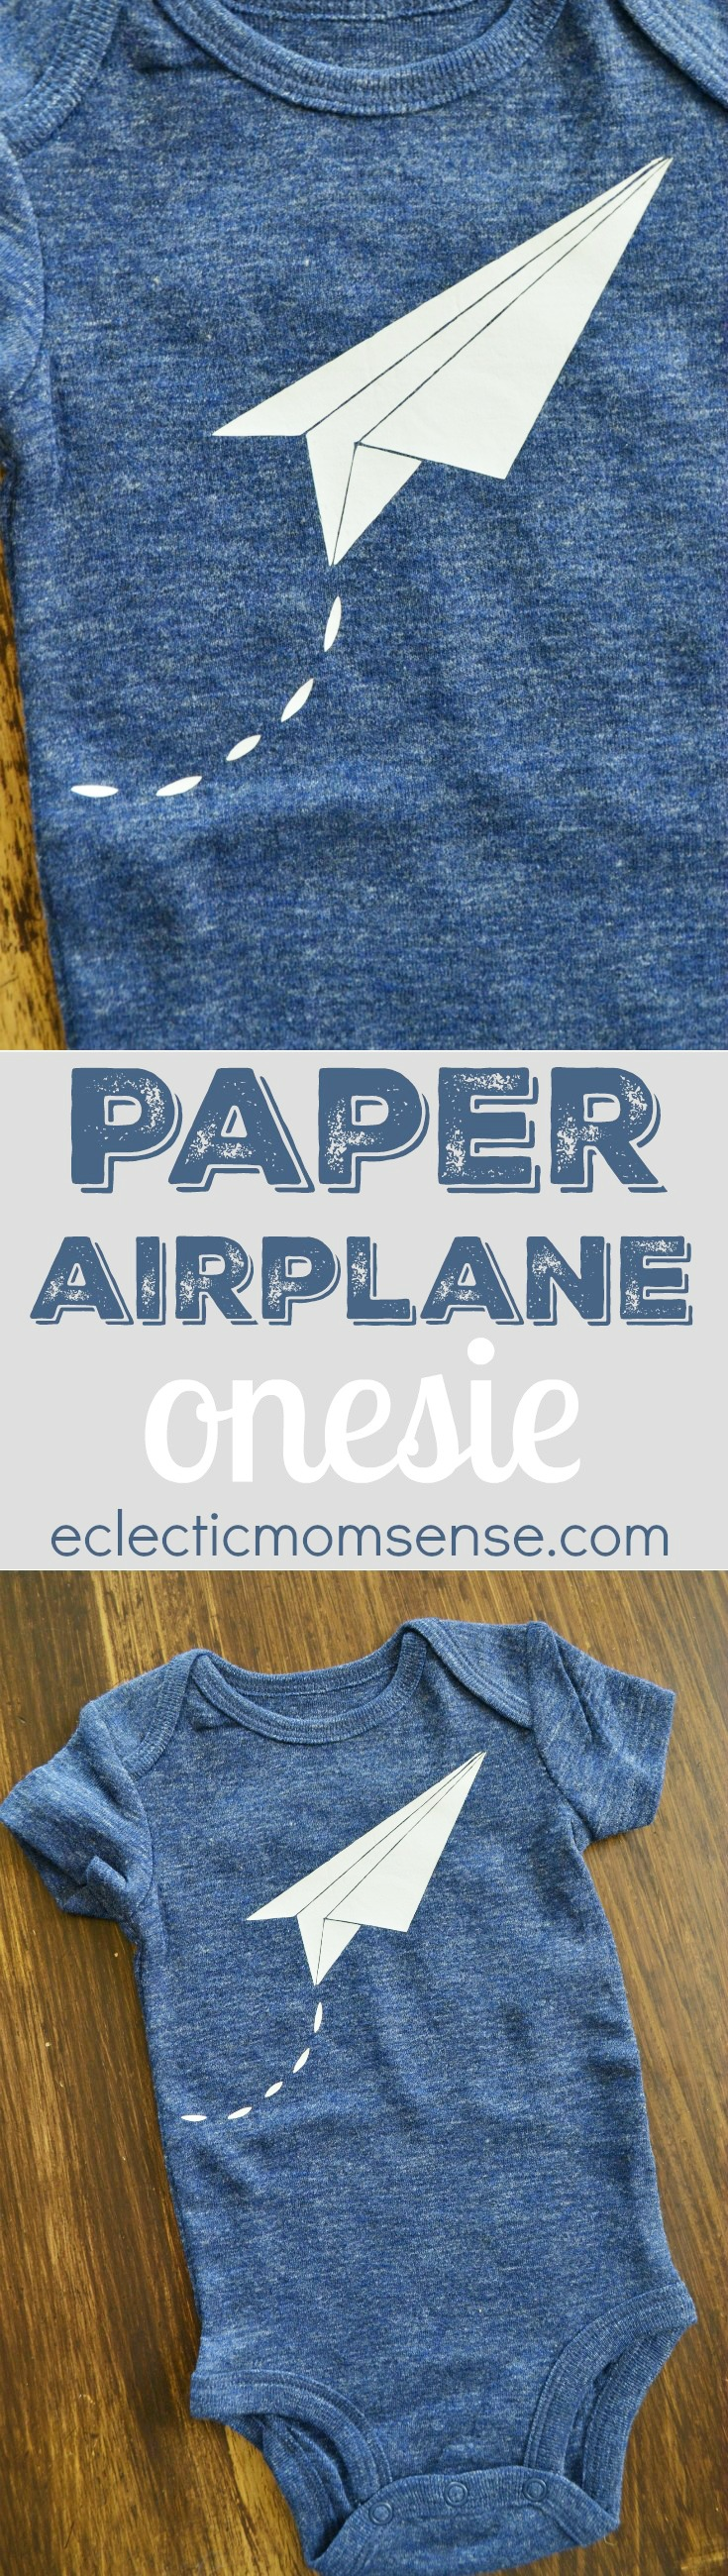 DIY Paper Airplane Design | Heat Transfer Vinyl Onesie- makes a great baby shower gift for the wee aviator.  :-)